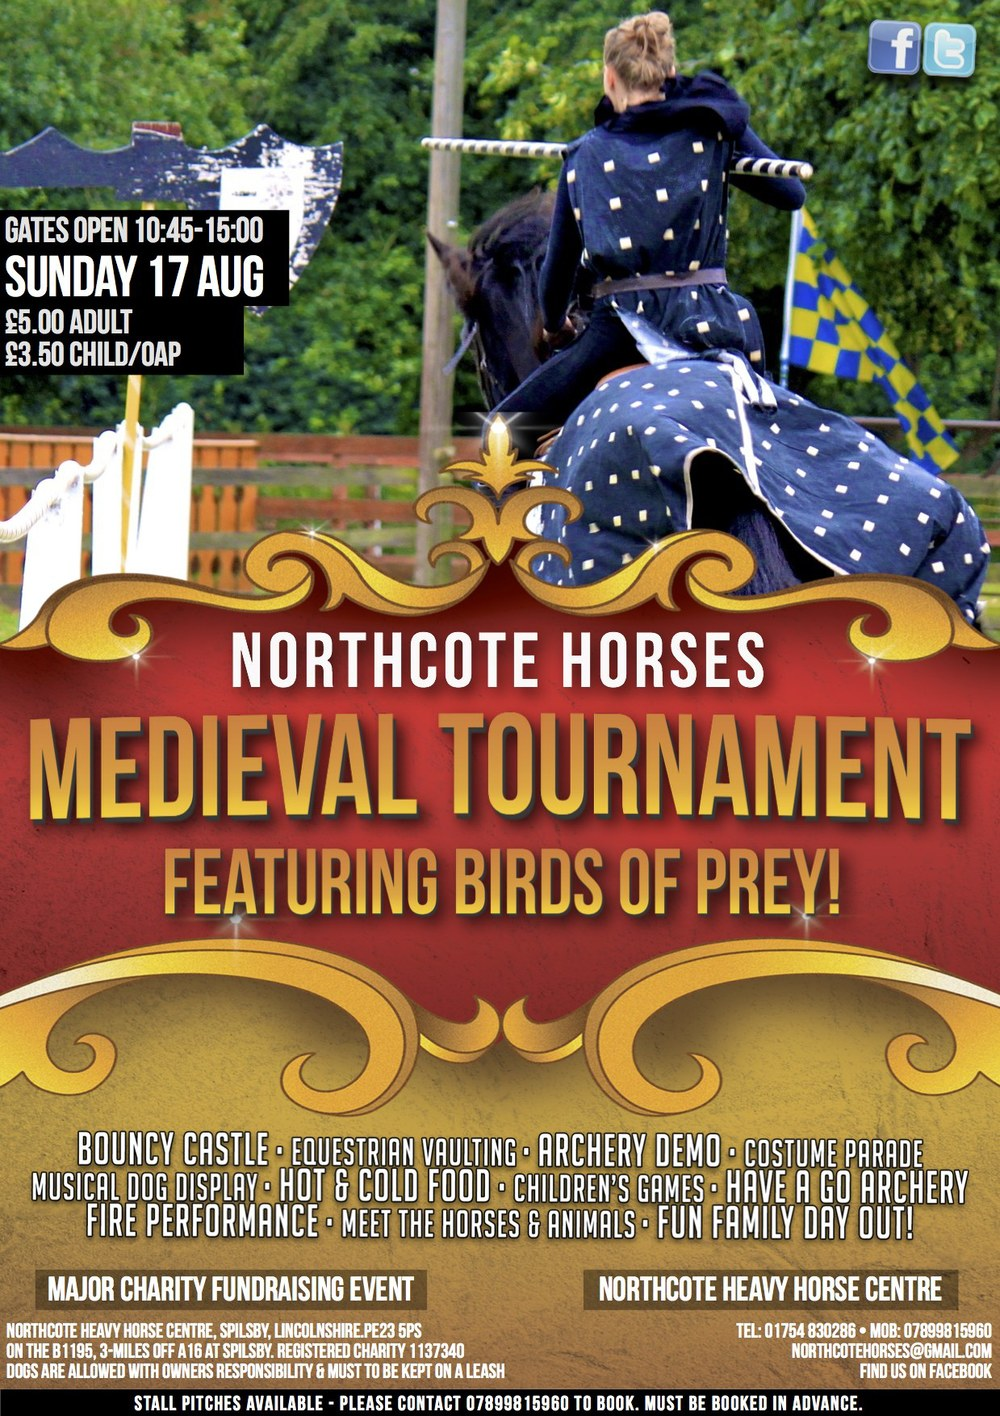 Medieval Poster Northcote Heavy Horse Centre Attraction Lincolnshire.jpg